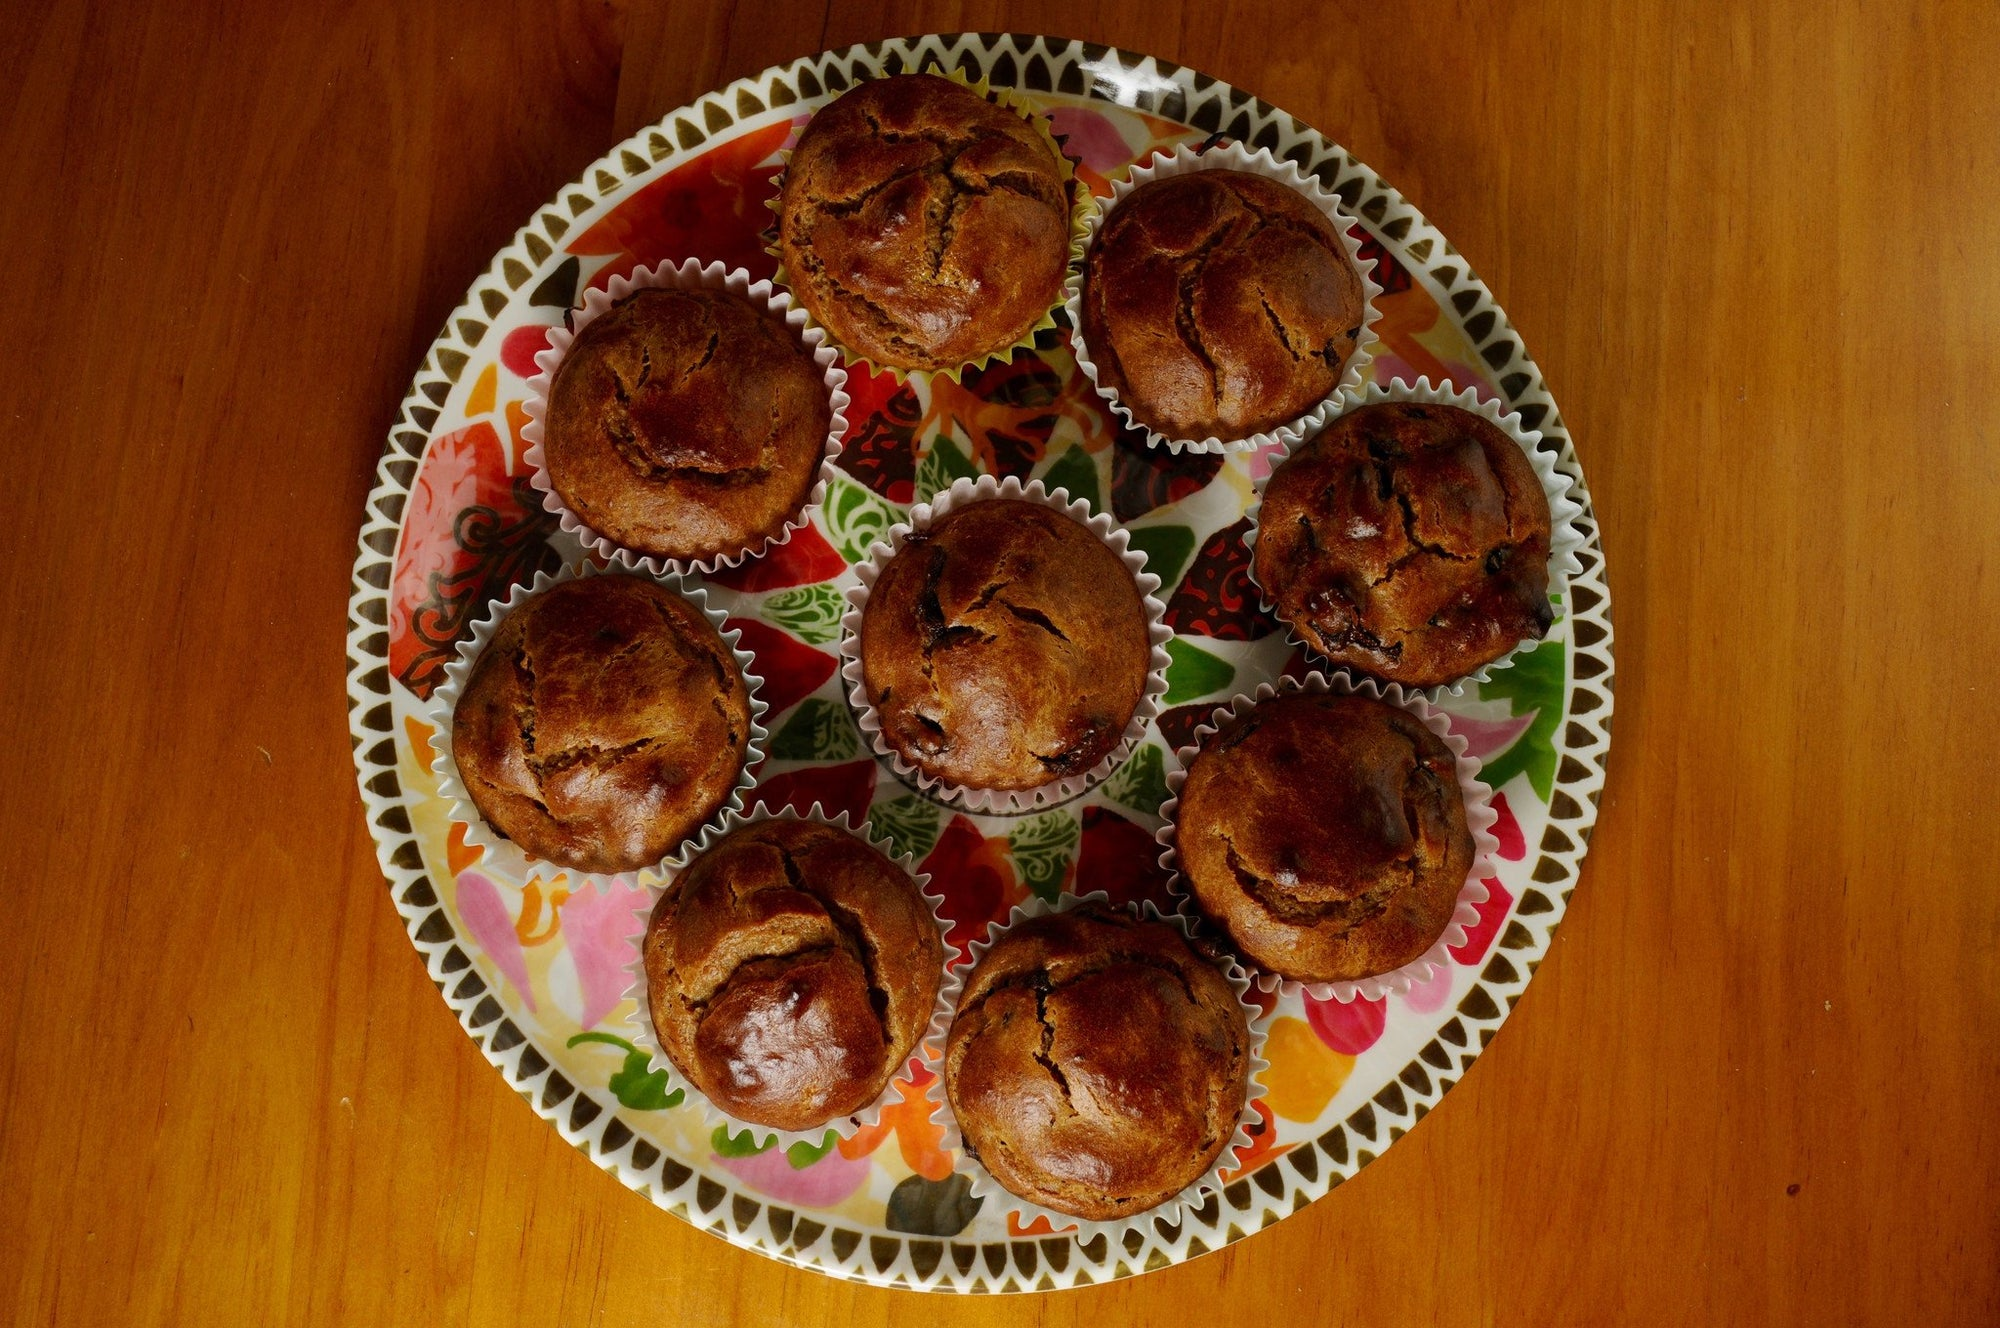 Simple Blender Muffins (with NibMor chocolate!)